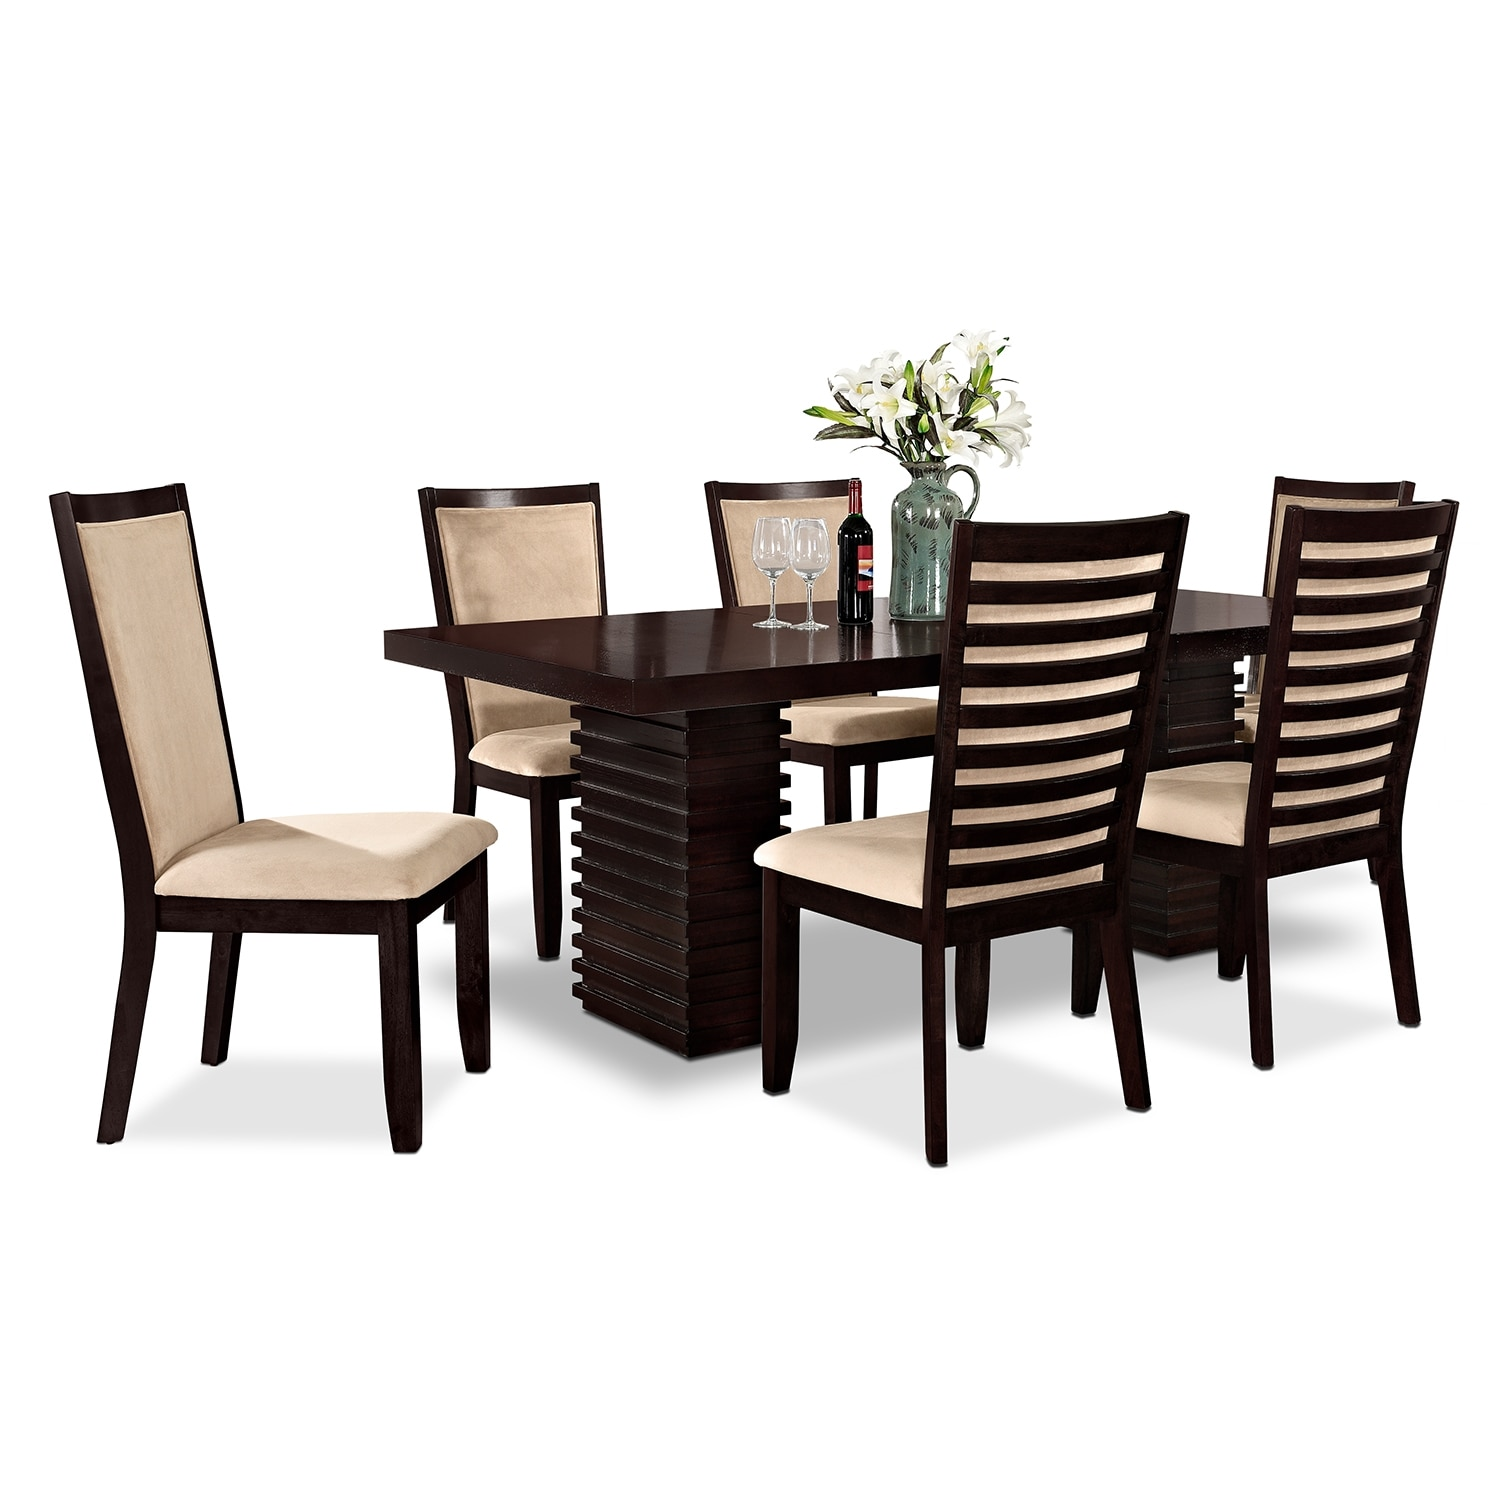 Paragon Table and 6 Chairs Merlot and Camel